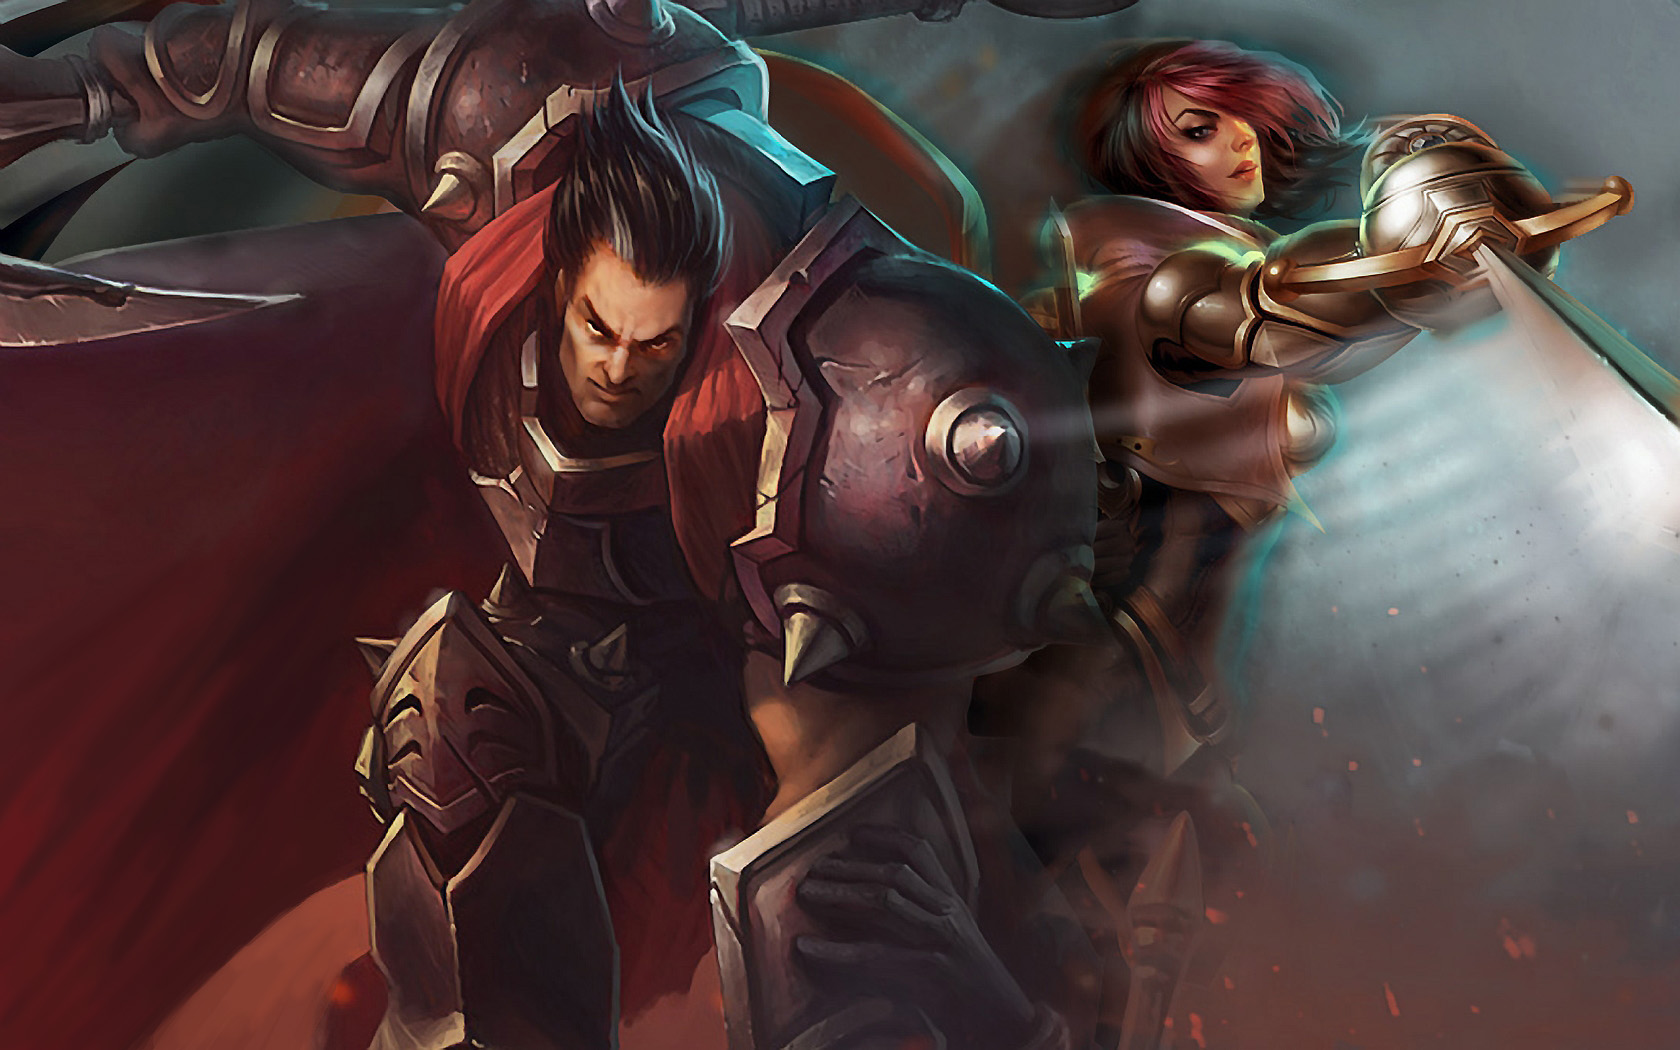 Darius & Fiora wallpaper